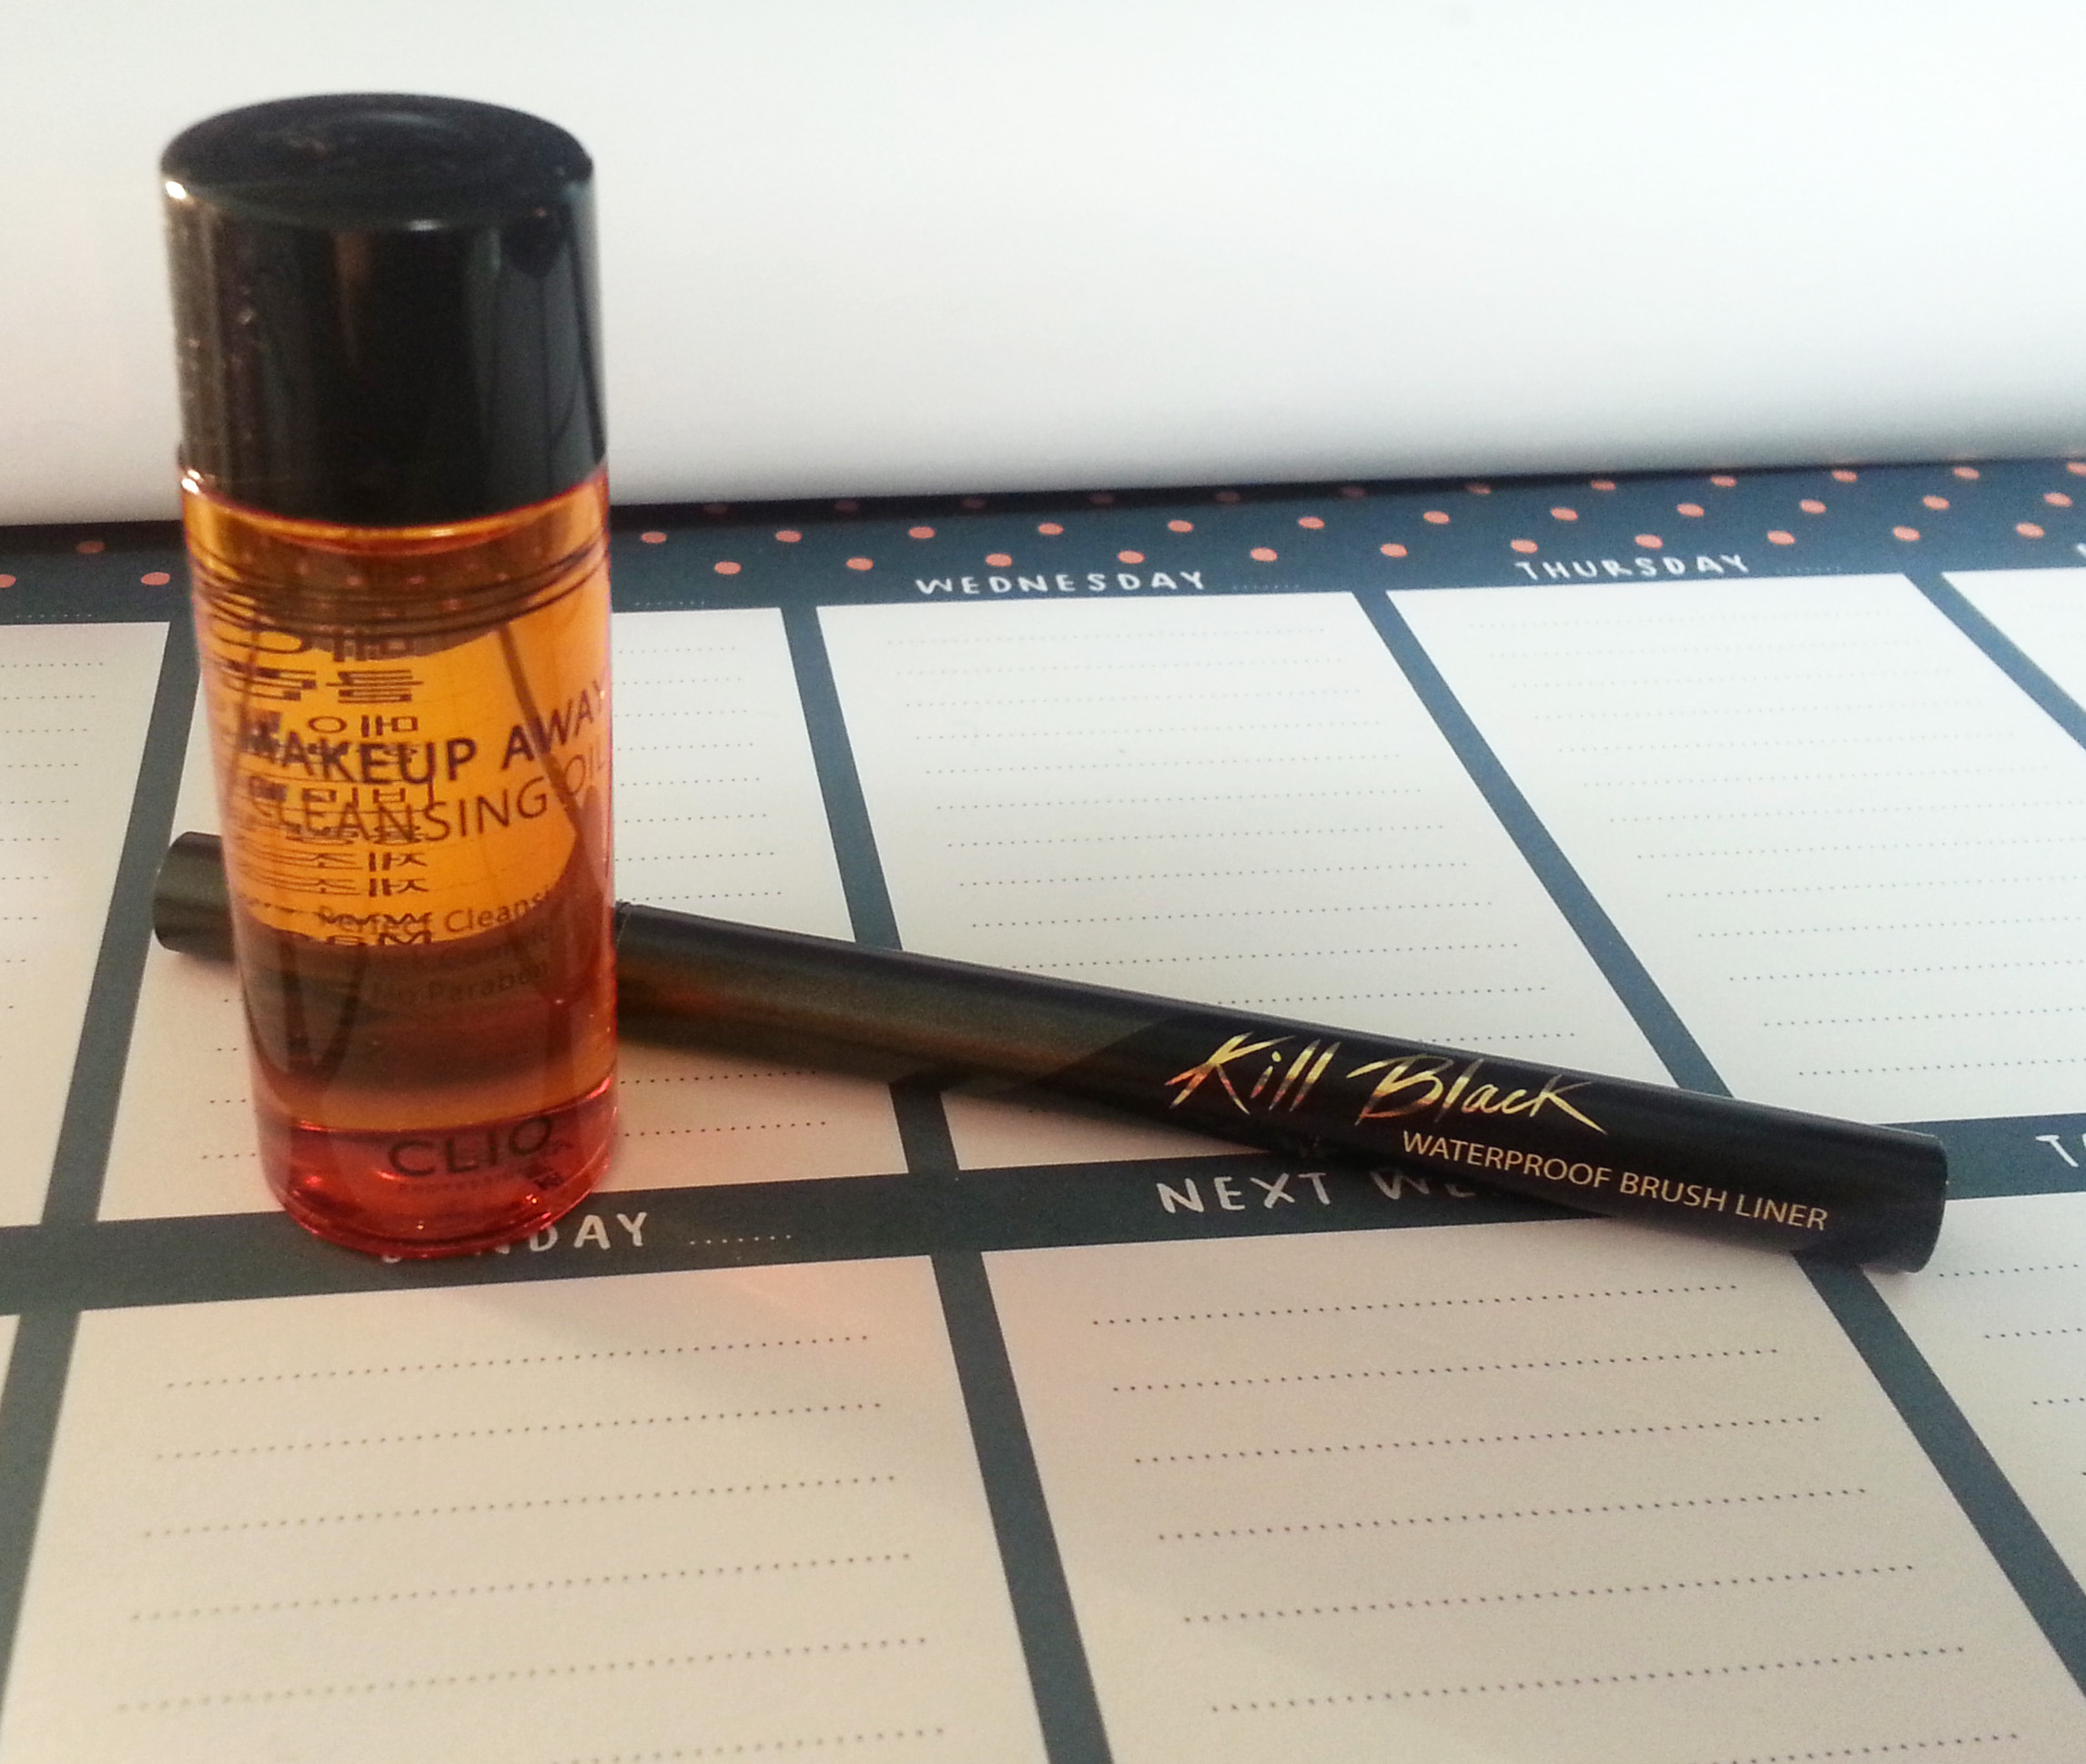 The liner is fairly typical of a pen liner – it's in a long black ...